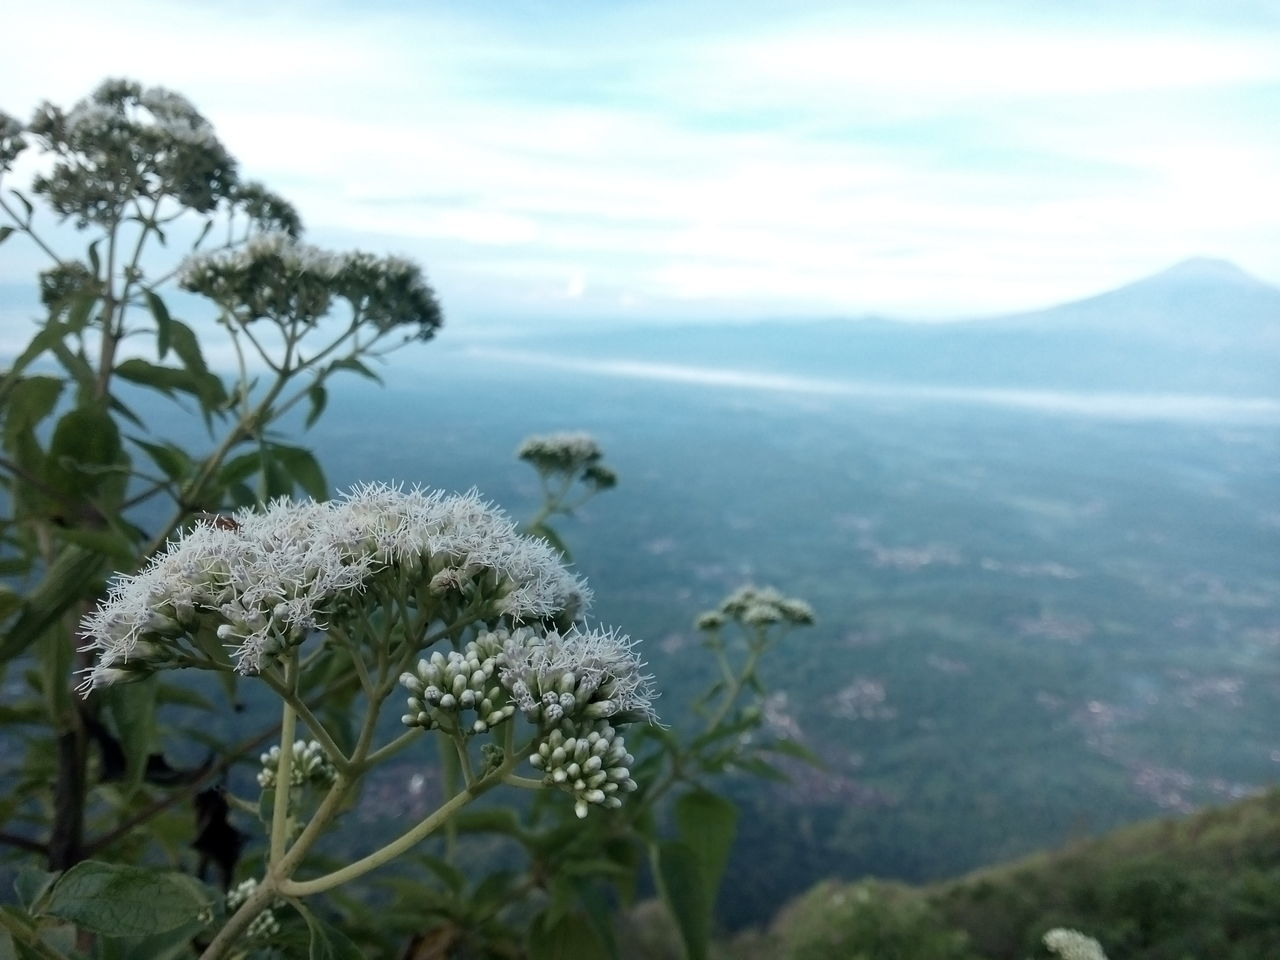 nature, growth, beauty in nature, plant, no people, sky, outdoors, scenics, landscape, flower, day, mountain, close-up